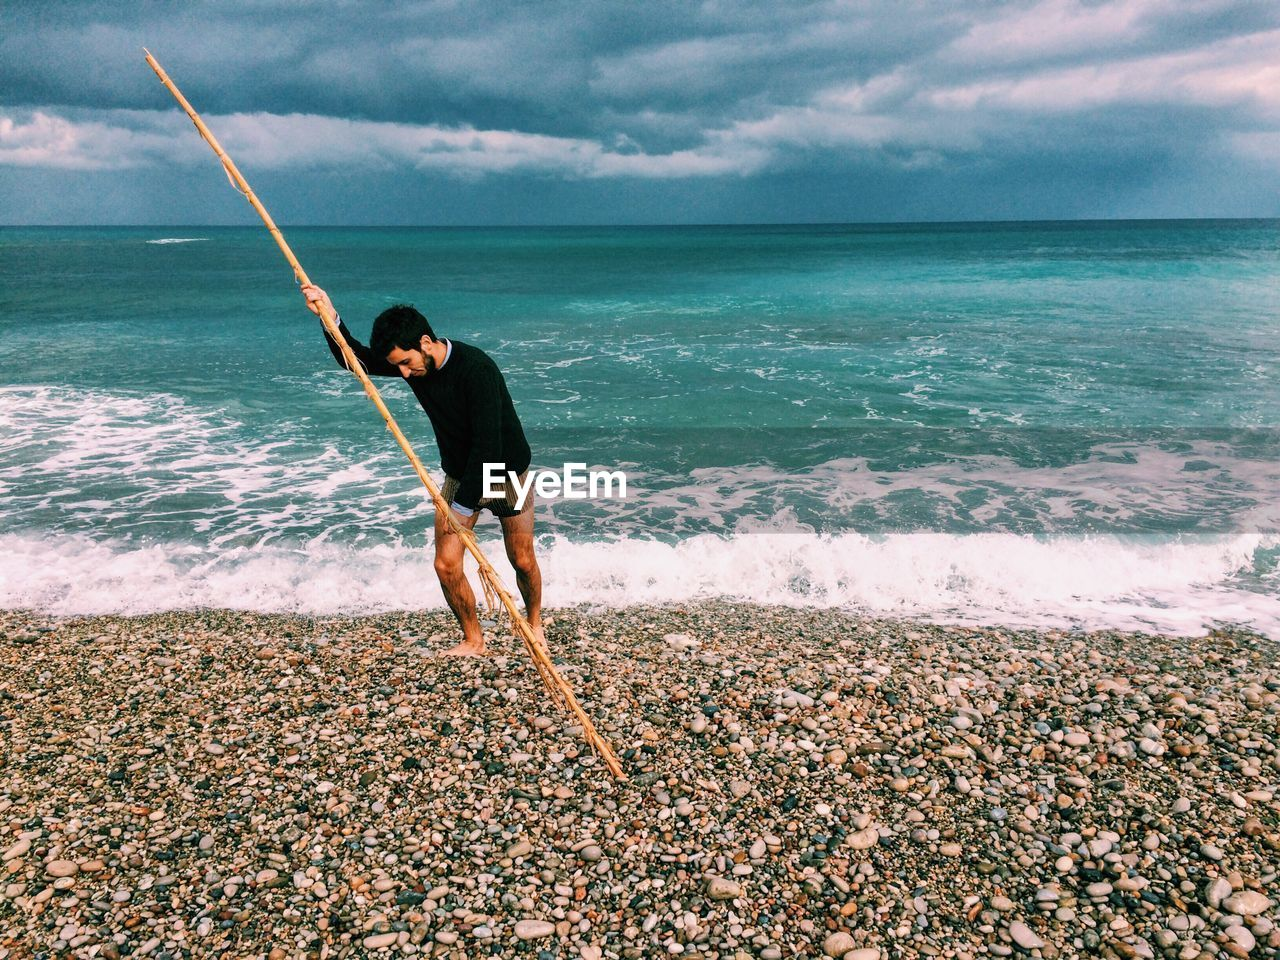 Fisherman with pole on seashore against cloudy sky